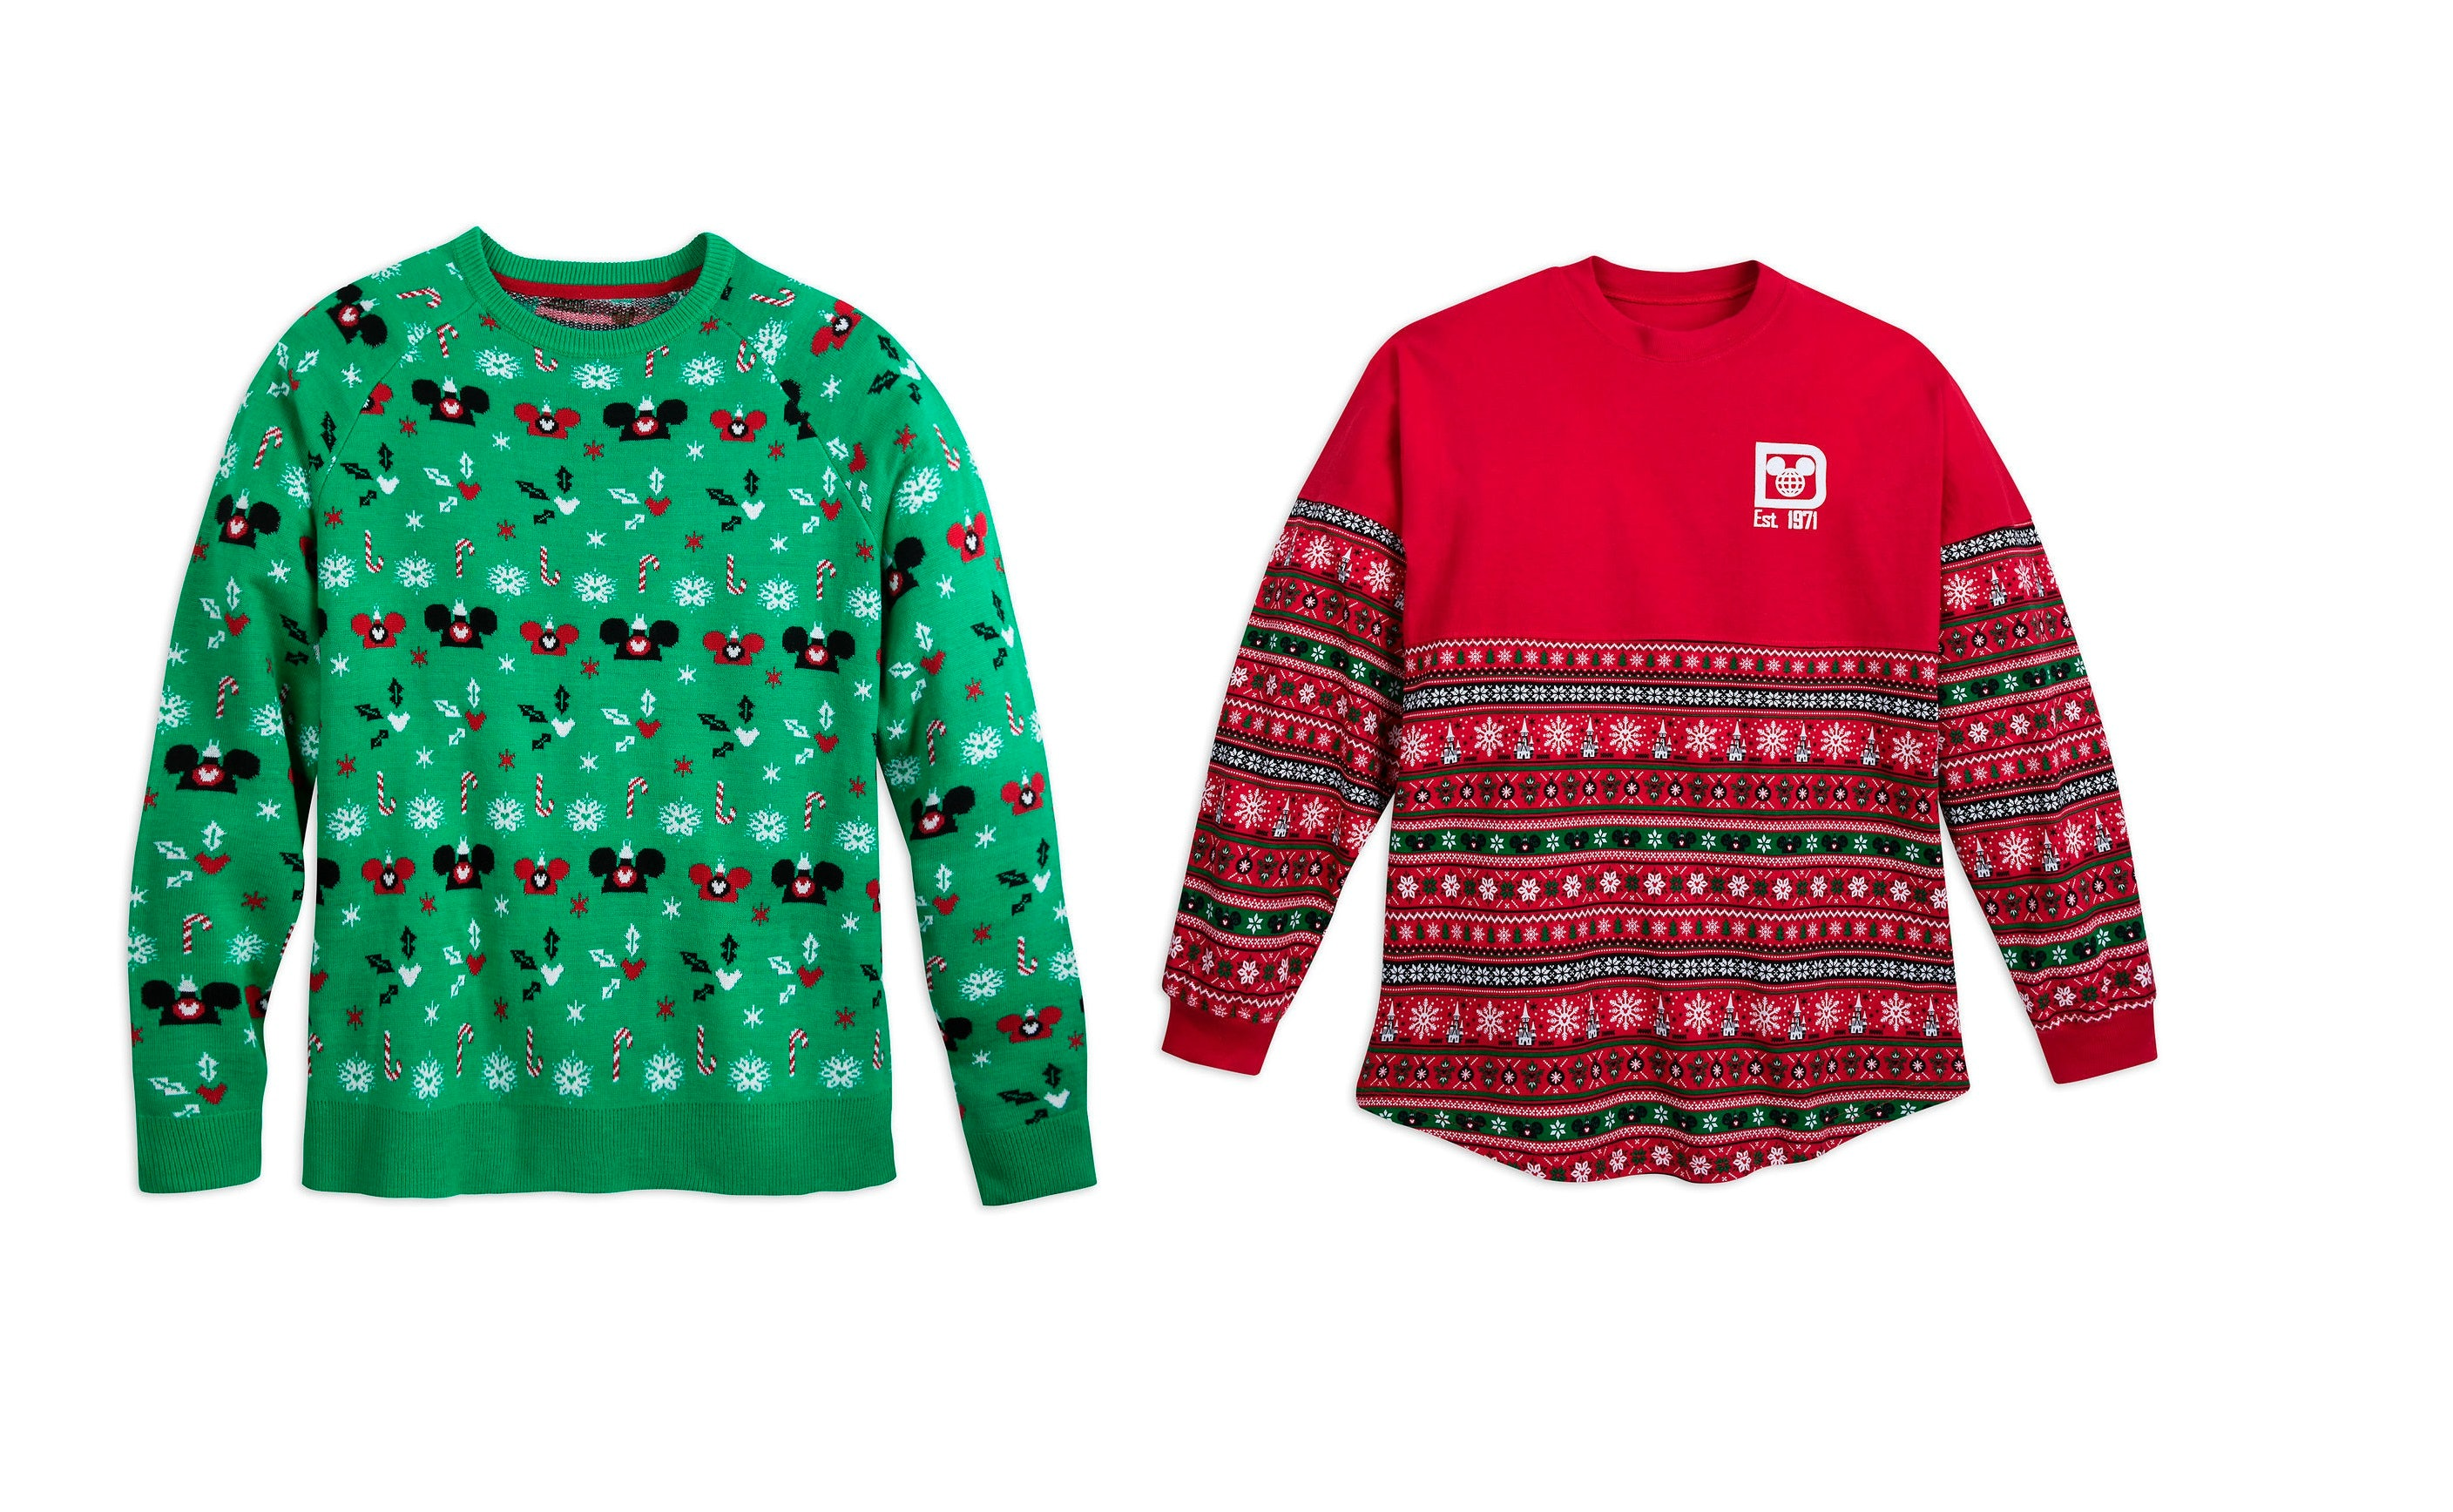 Where To Buy Disney S Holiday Spirit Jerseys To Make This Your Most